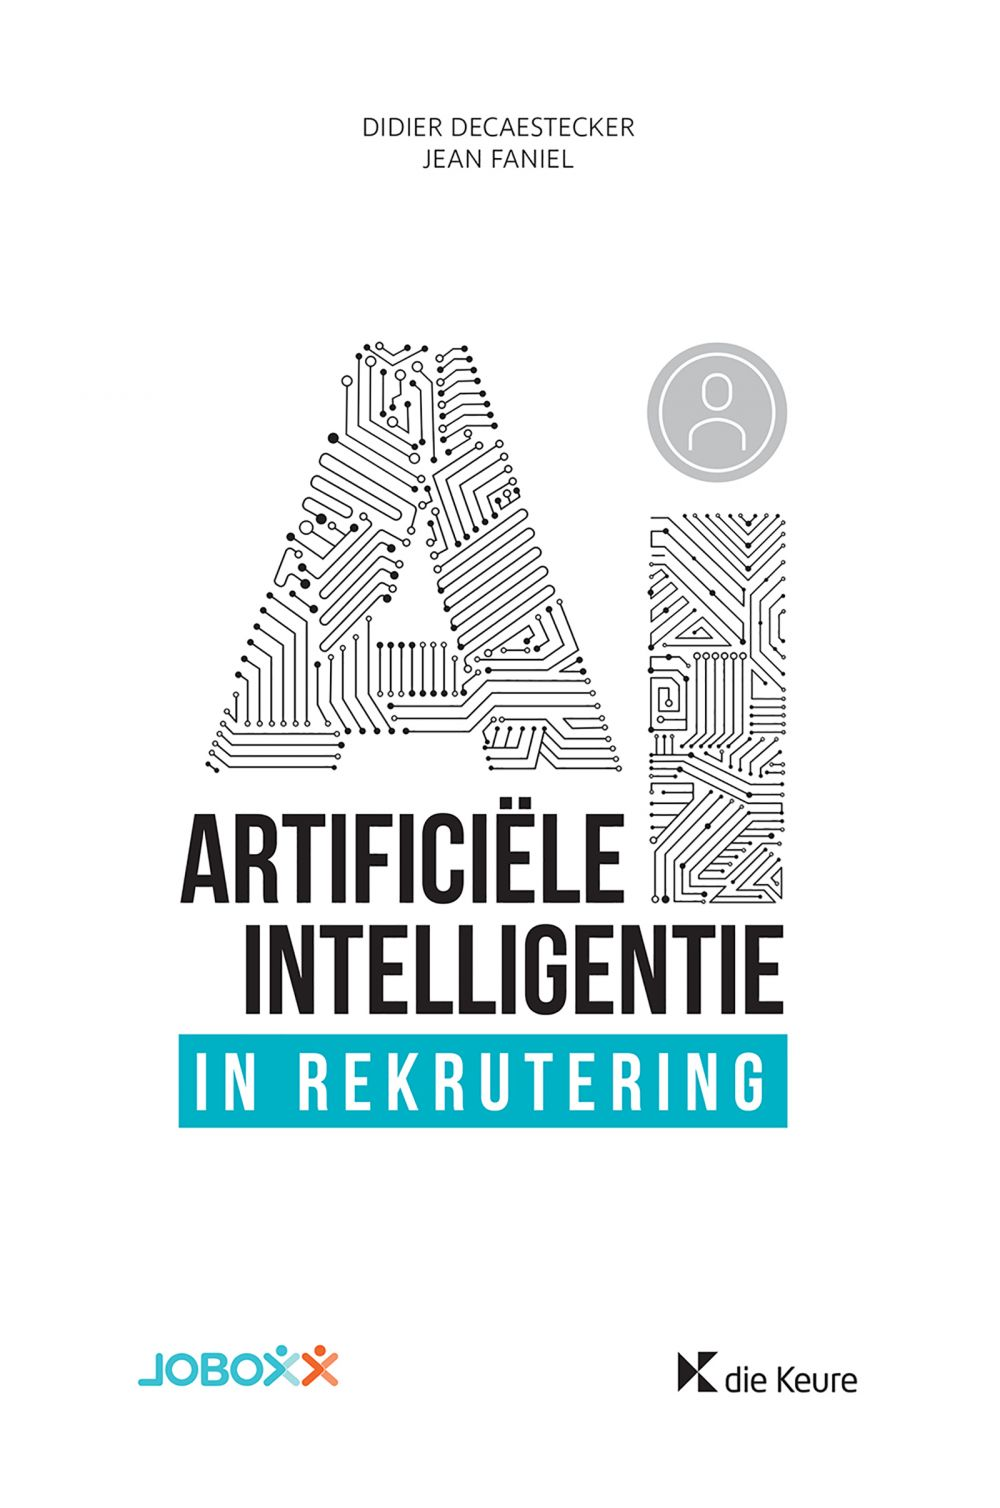 Artificiële Intelligentie in rekrutering